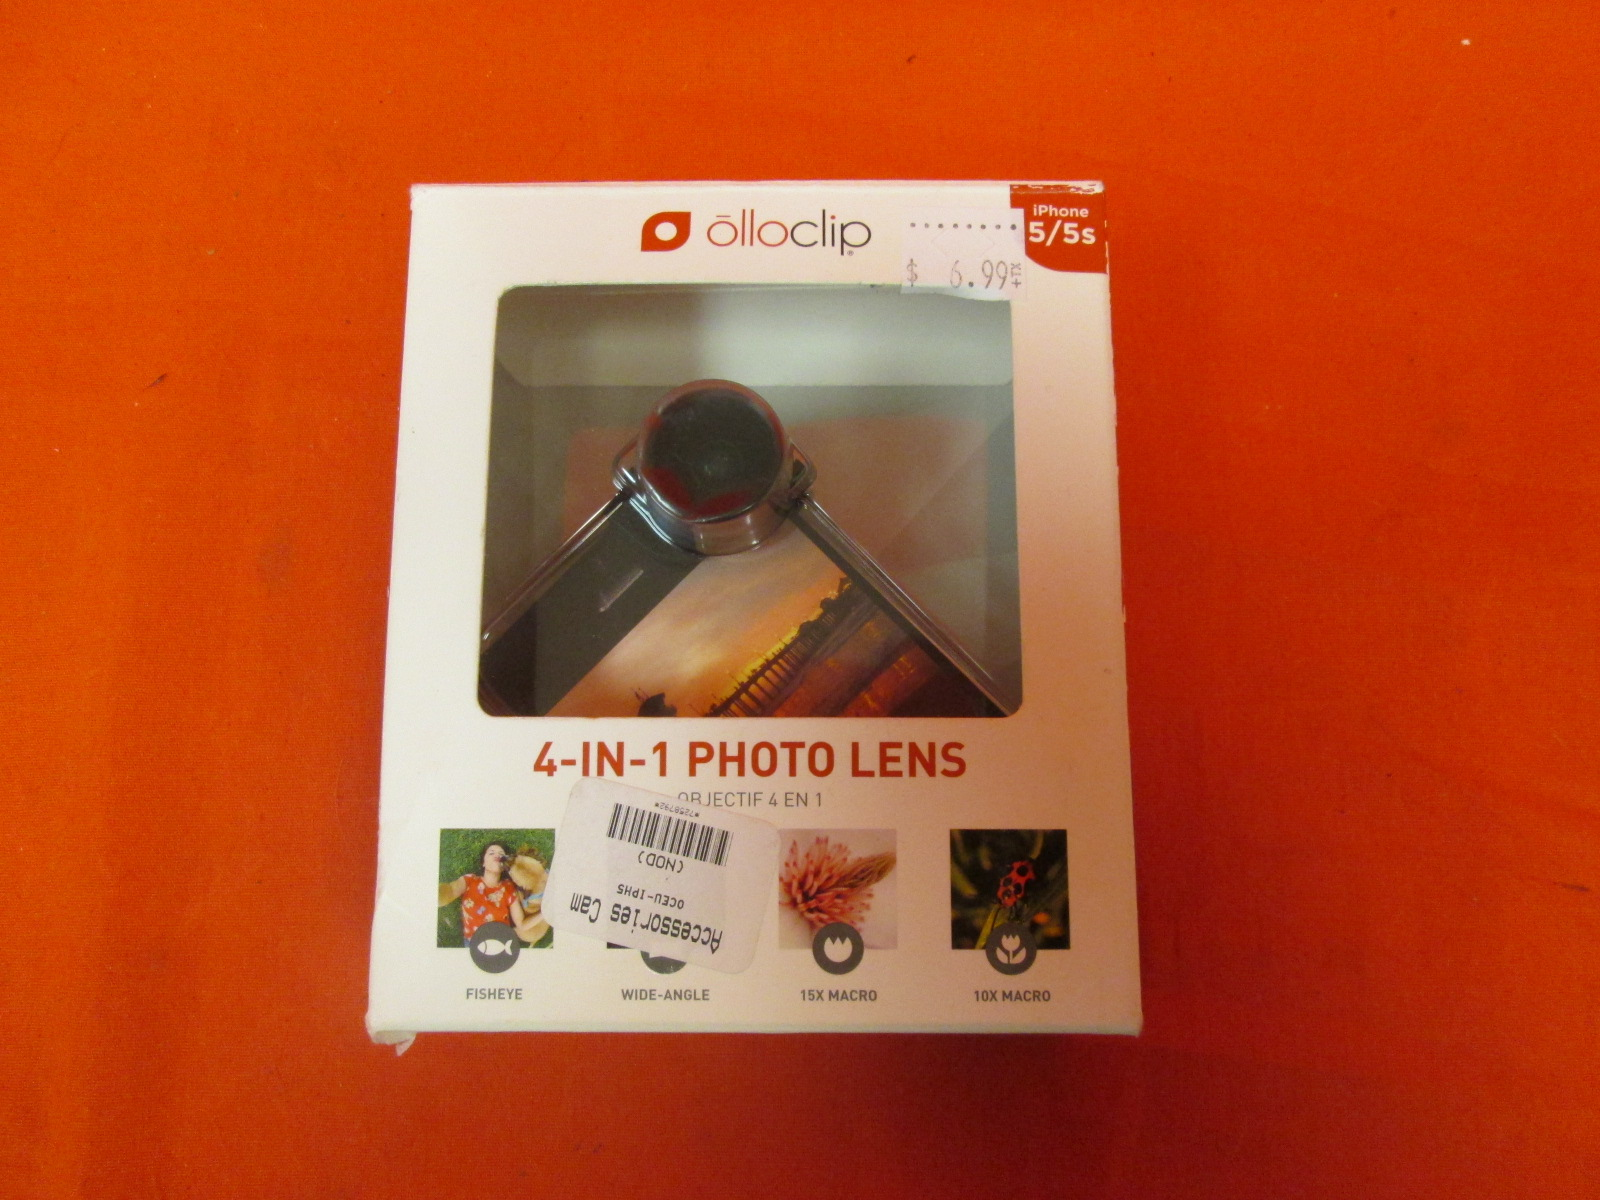 Olloclip 4-IN-1 Photo Lens For iPhone 5/5S